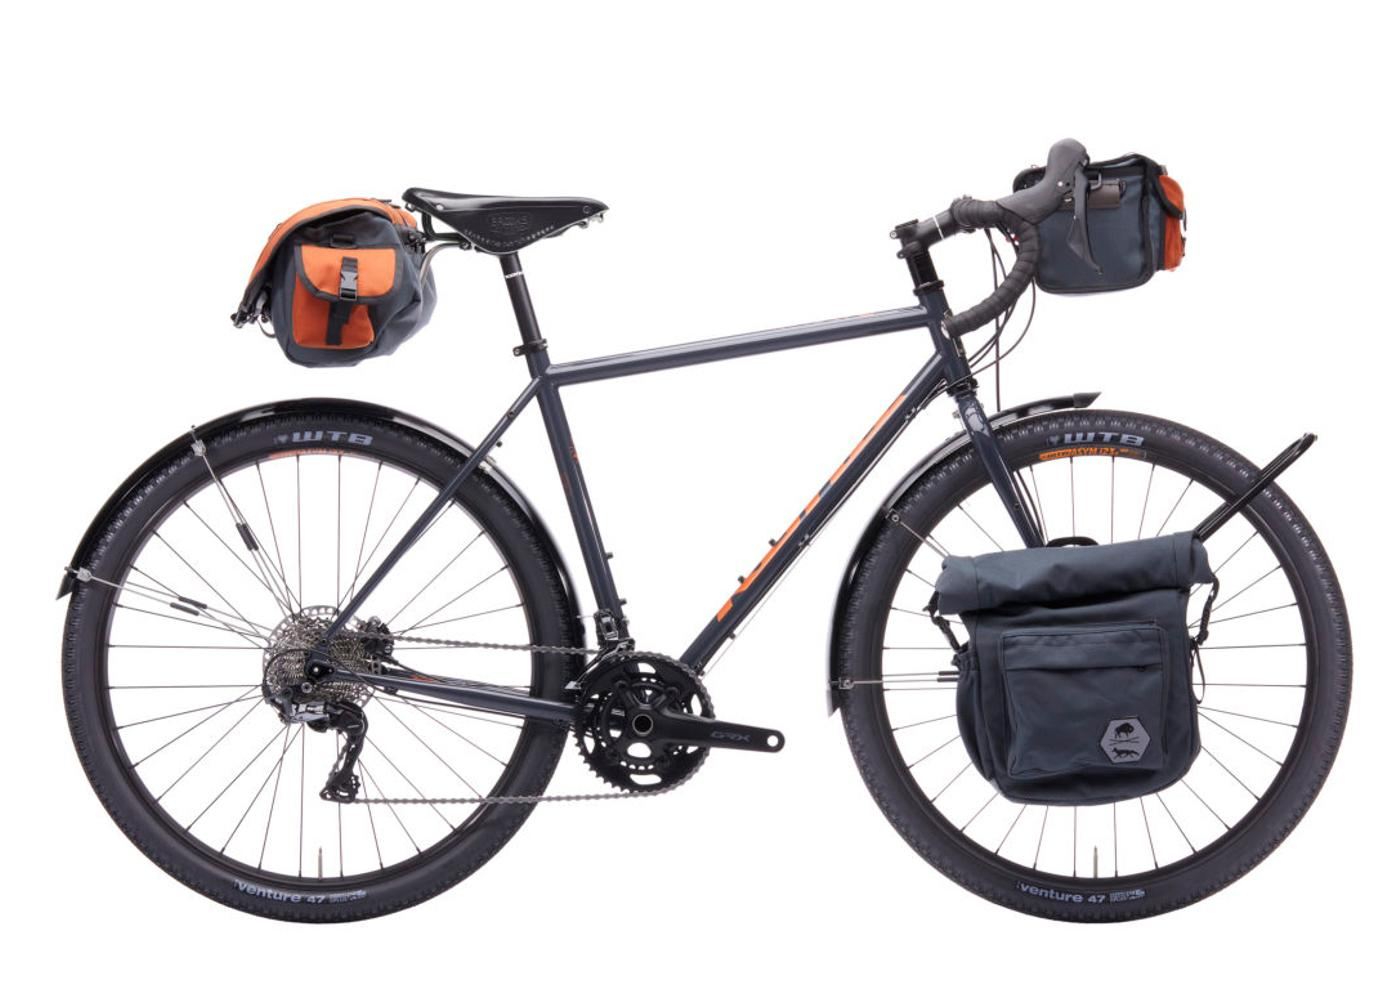 The Swift X Kona Rove ST Touring Bike